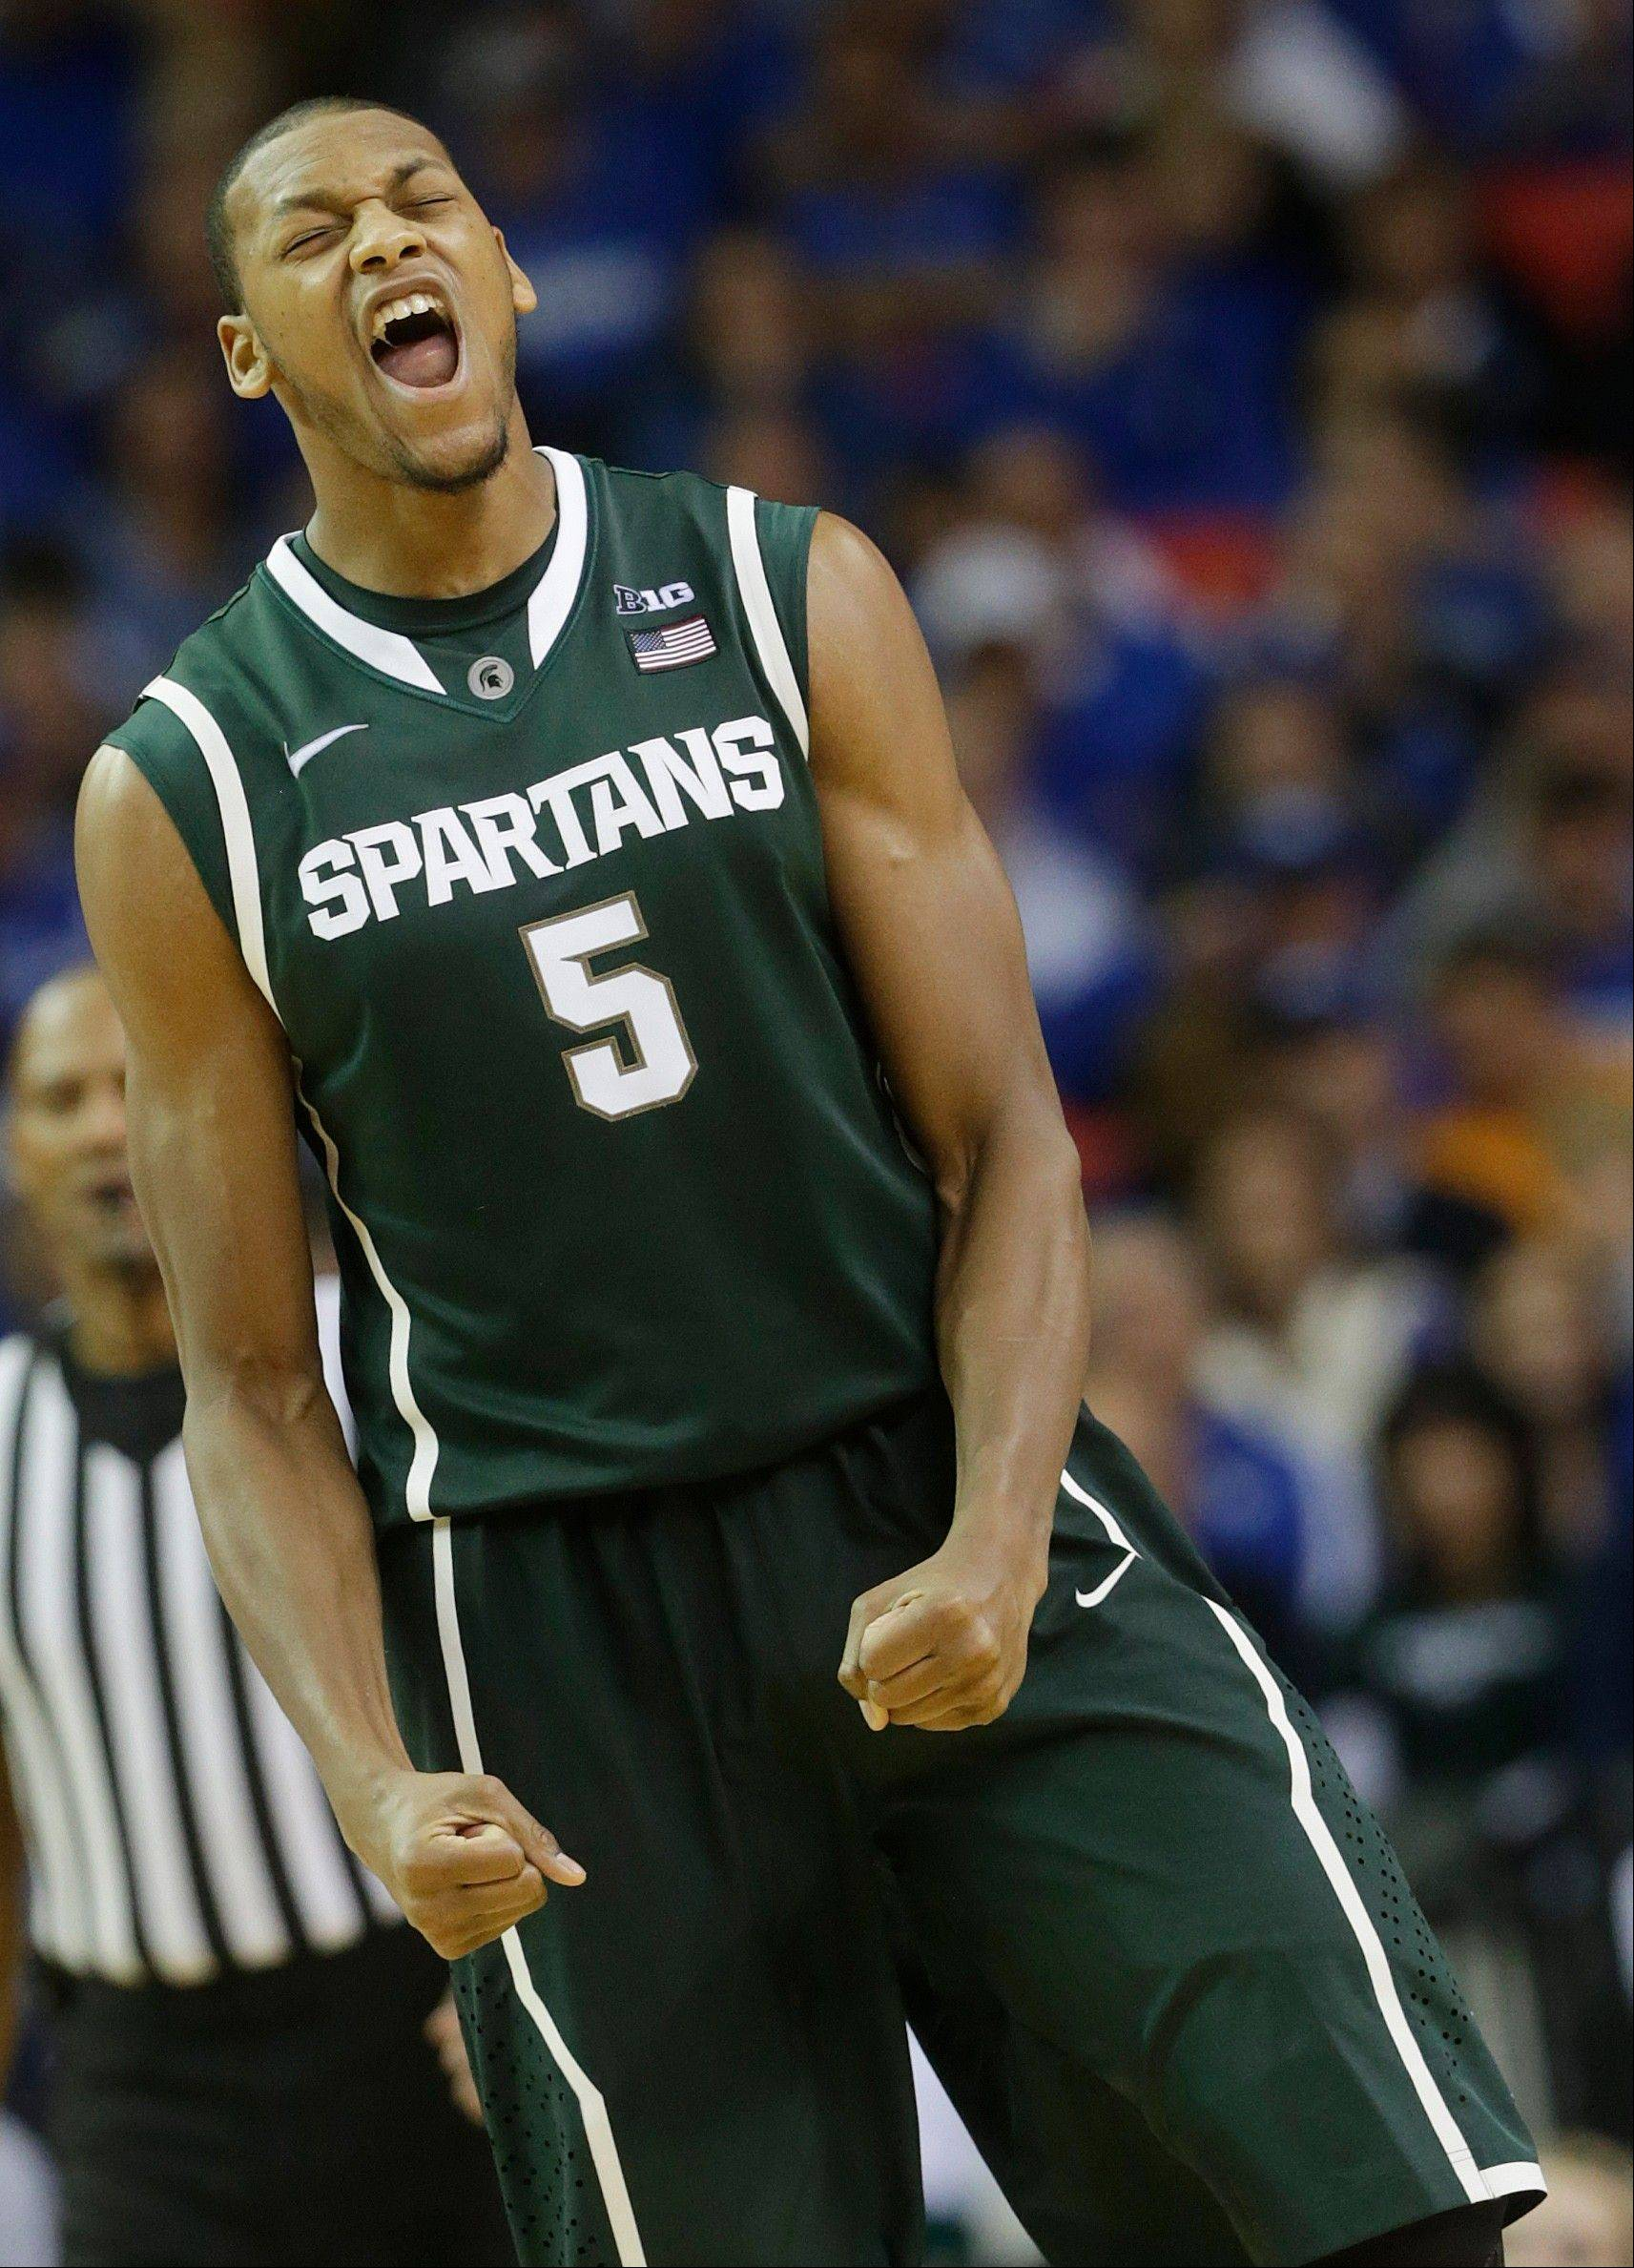 Appling leads Michigan State past Kansas 67-64